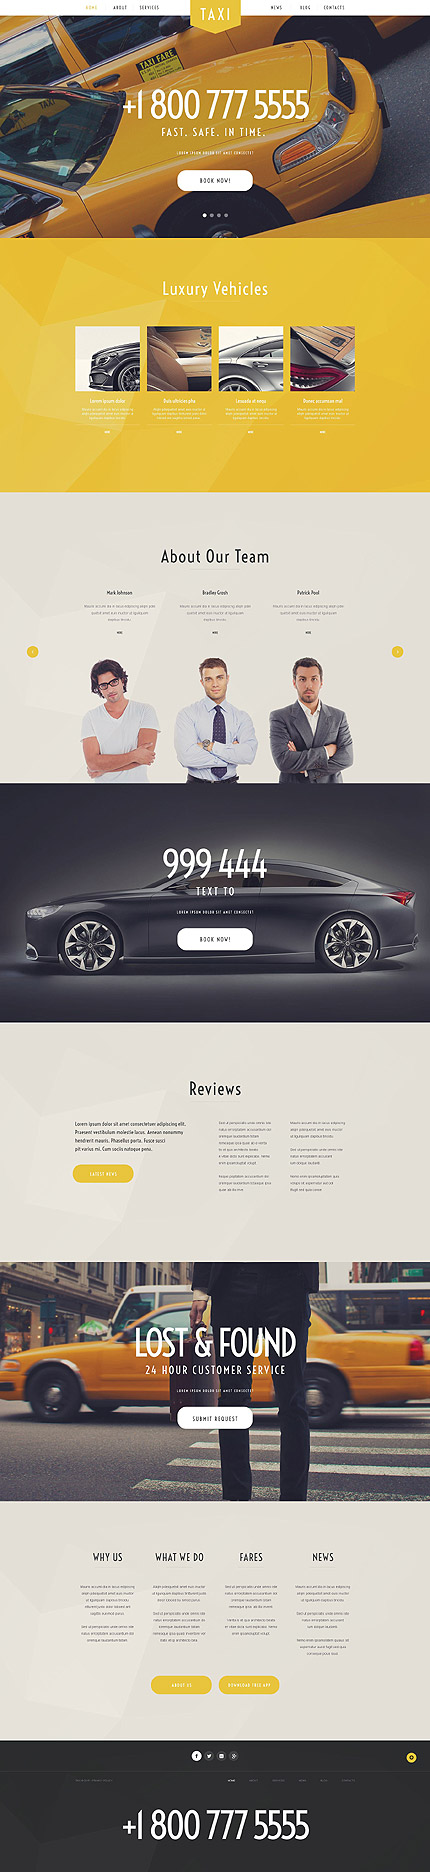 Template 54992 - Taxi Services Responsive WordPress Theme with Parallax, Slider, Blog and Portfolio